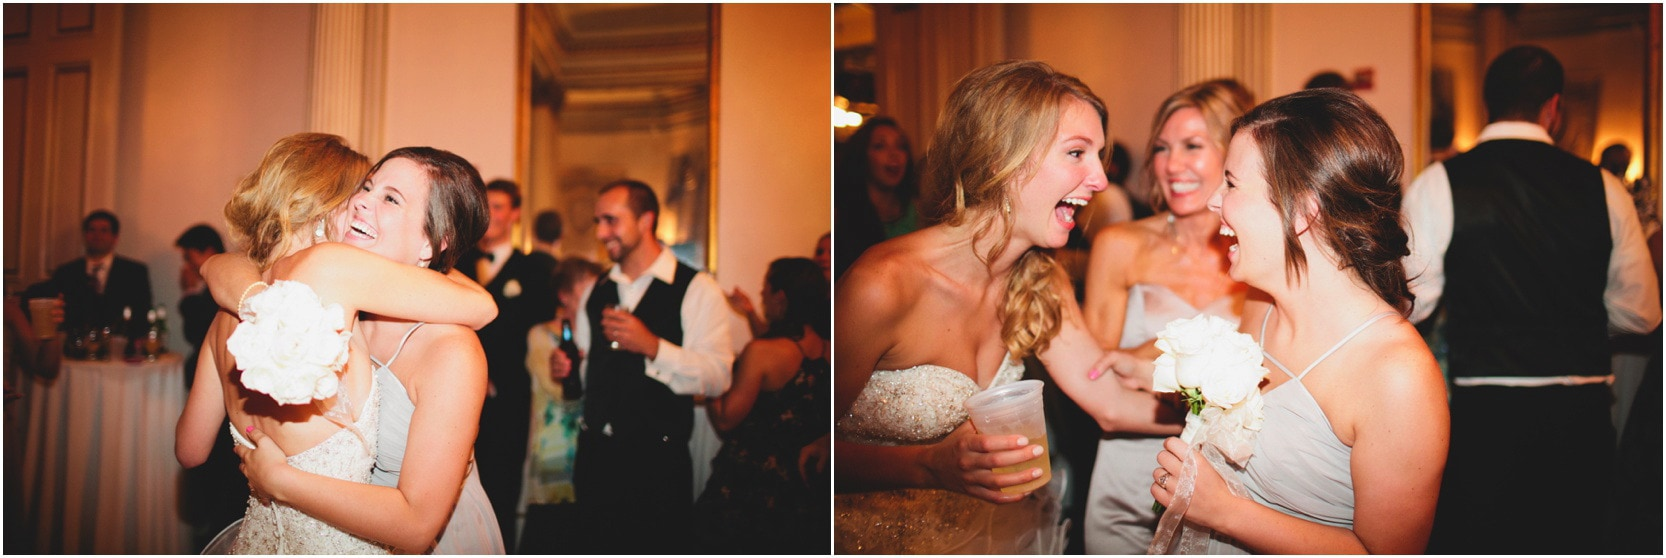 reception_spedale_neworleans__230_blogstomped